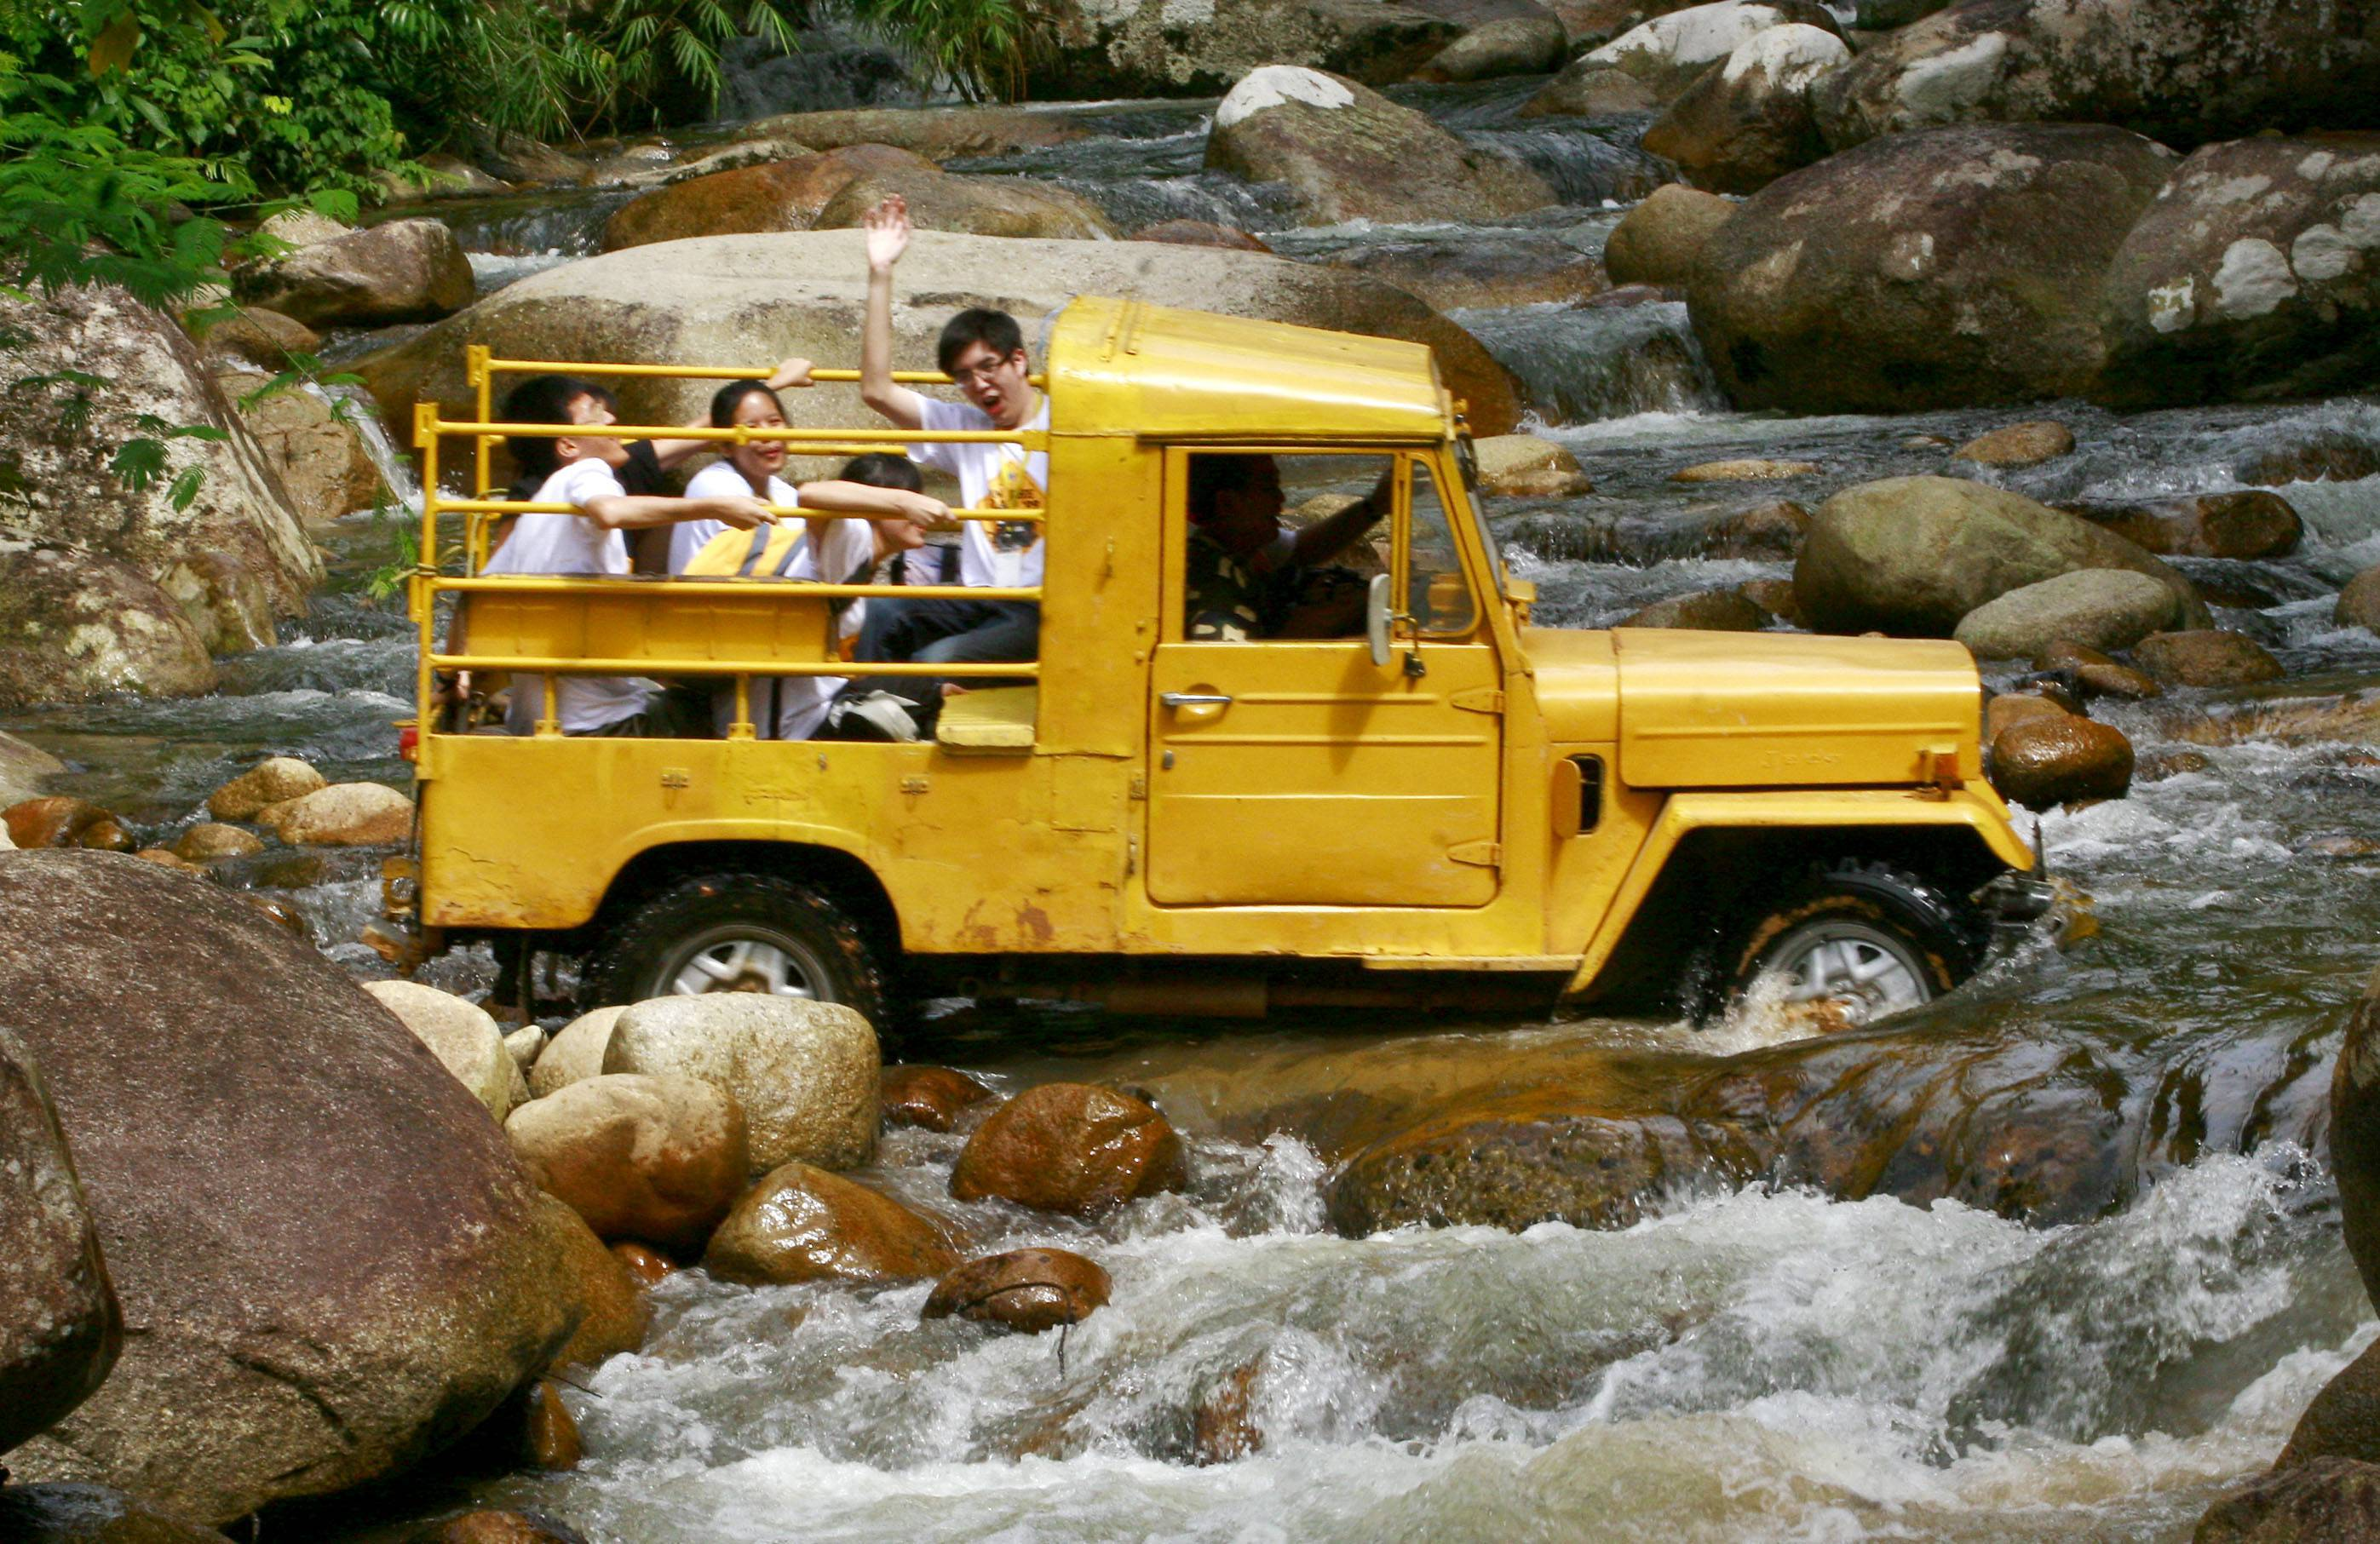 The BRATs being taken to the Lata Berembun waterfall in the back of a four-wheel-drive truck. They got in touch with nature and had the time of their lives going off-road during the year-end camp. ― Photo: CHAN TAK KONG/The Star